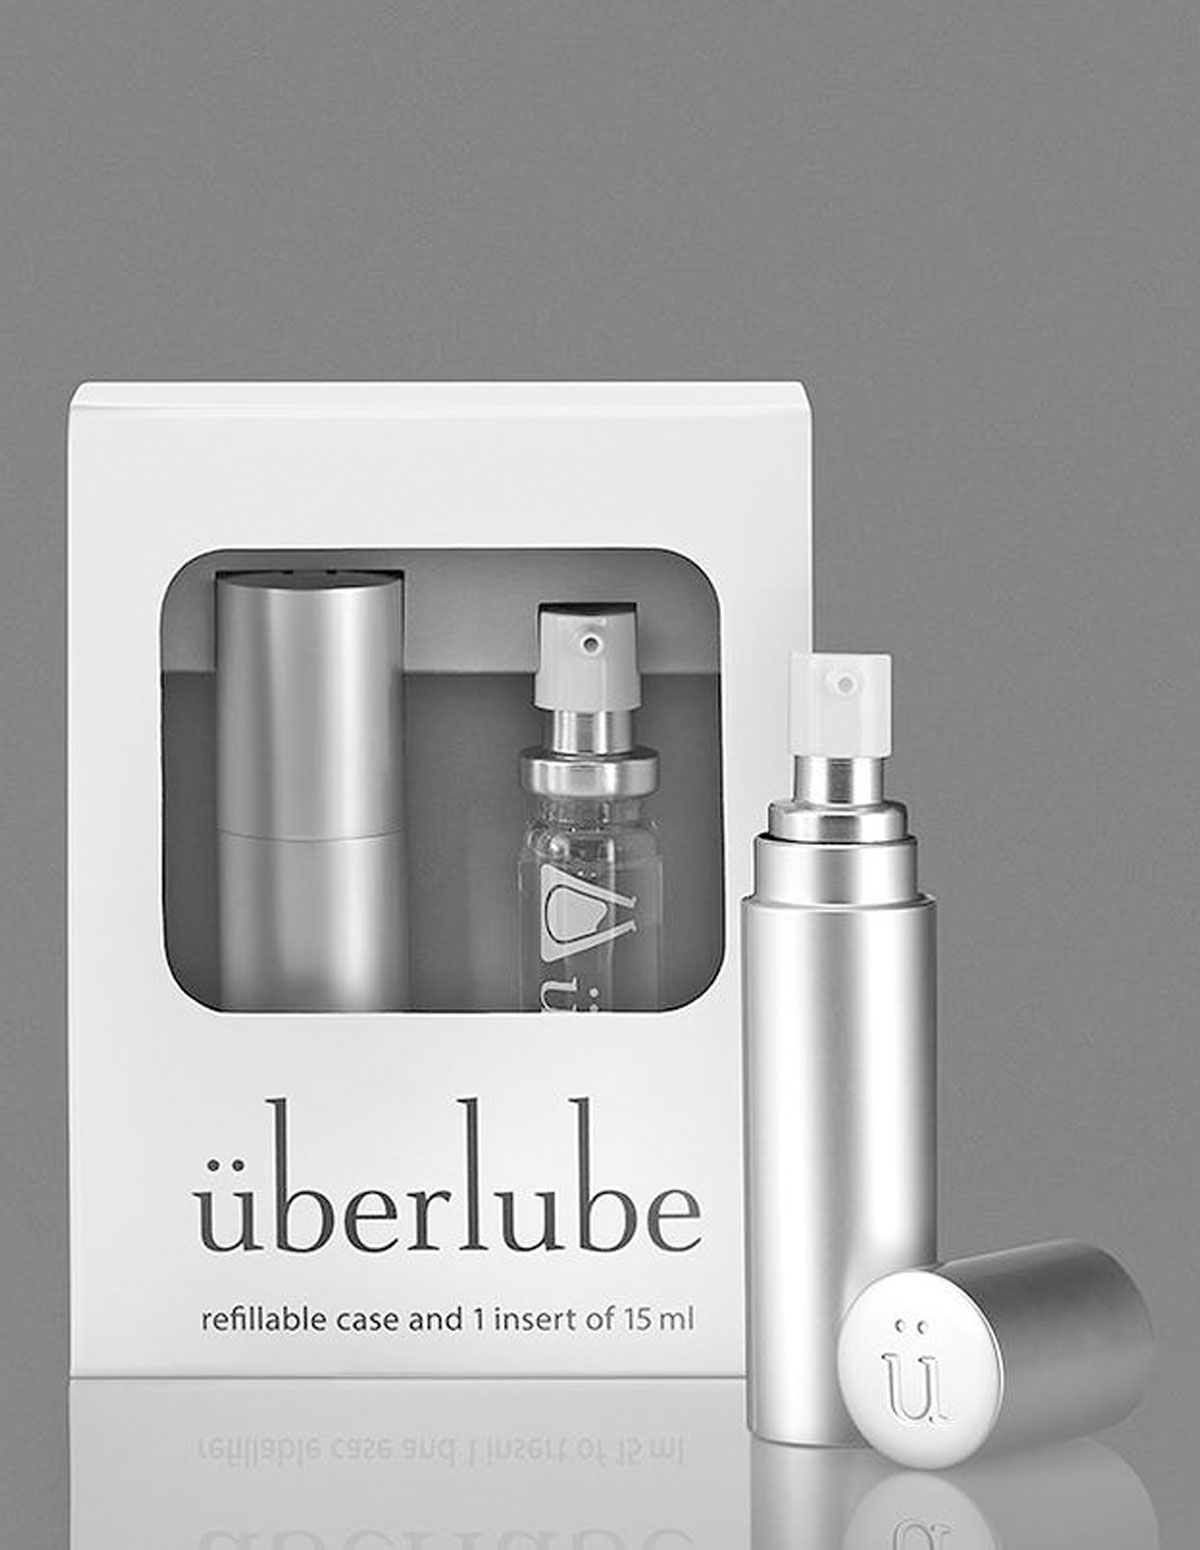 Uberlube Good To Go Silver